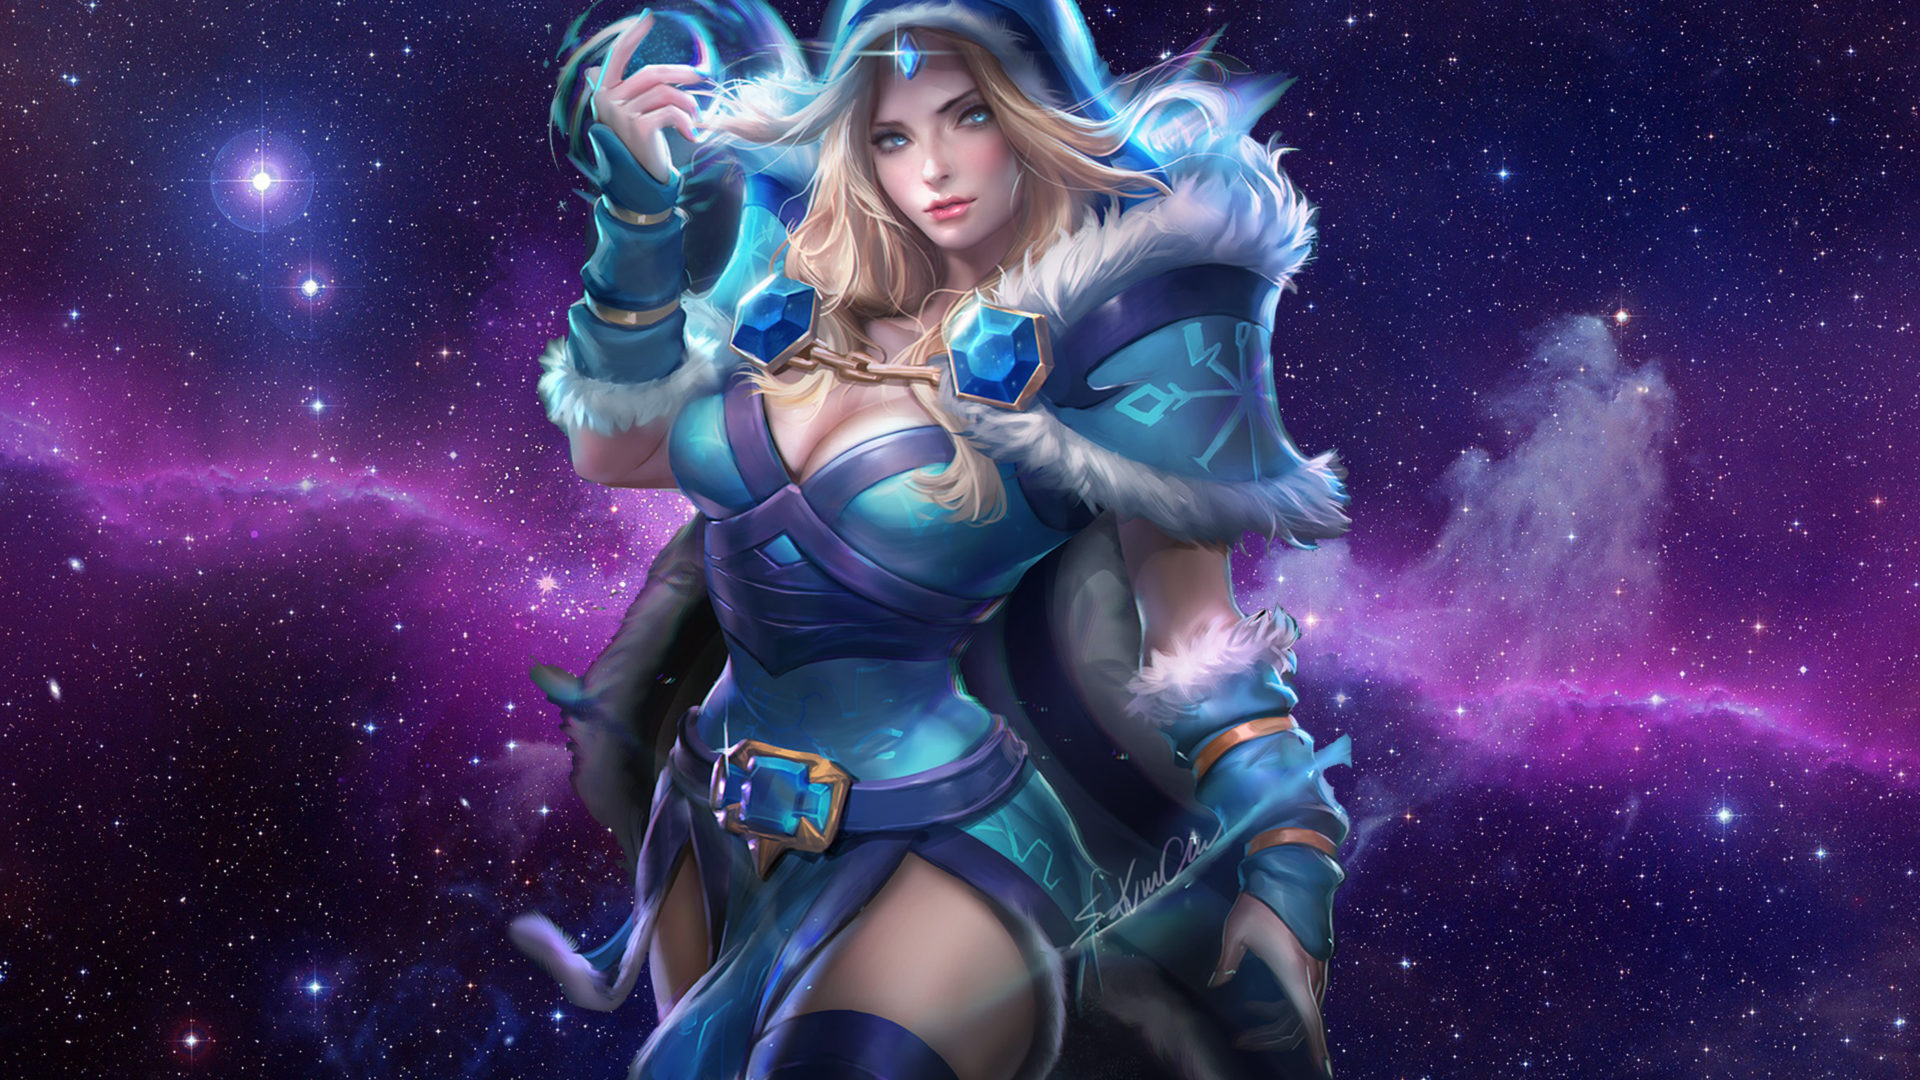 Free Hd Car Wallpaper Download For Pc Sakimichan Rylai The Crystal Maiden Dota 2 Art Picture Of